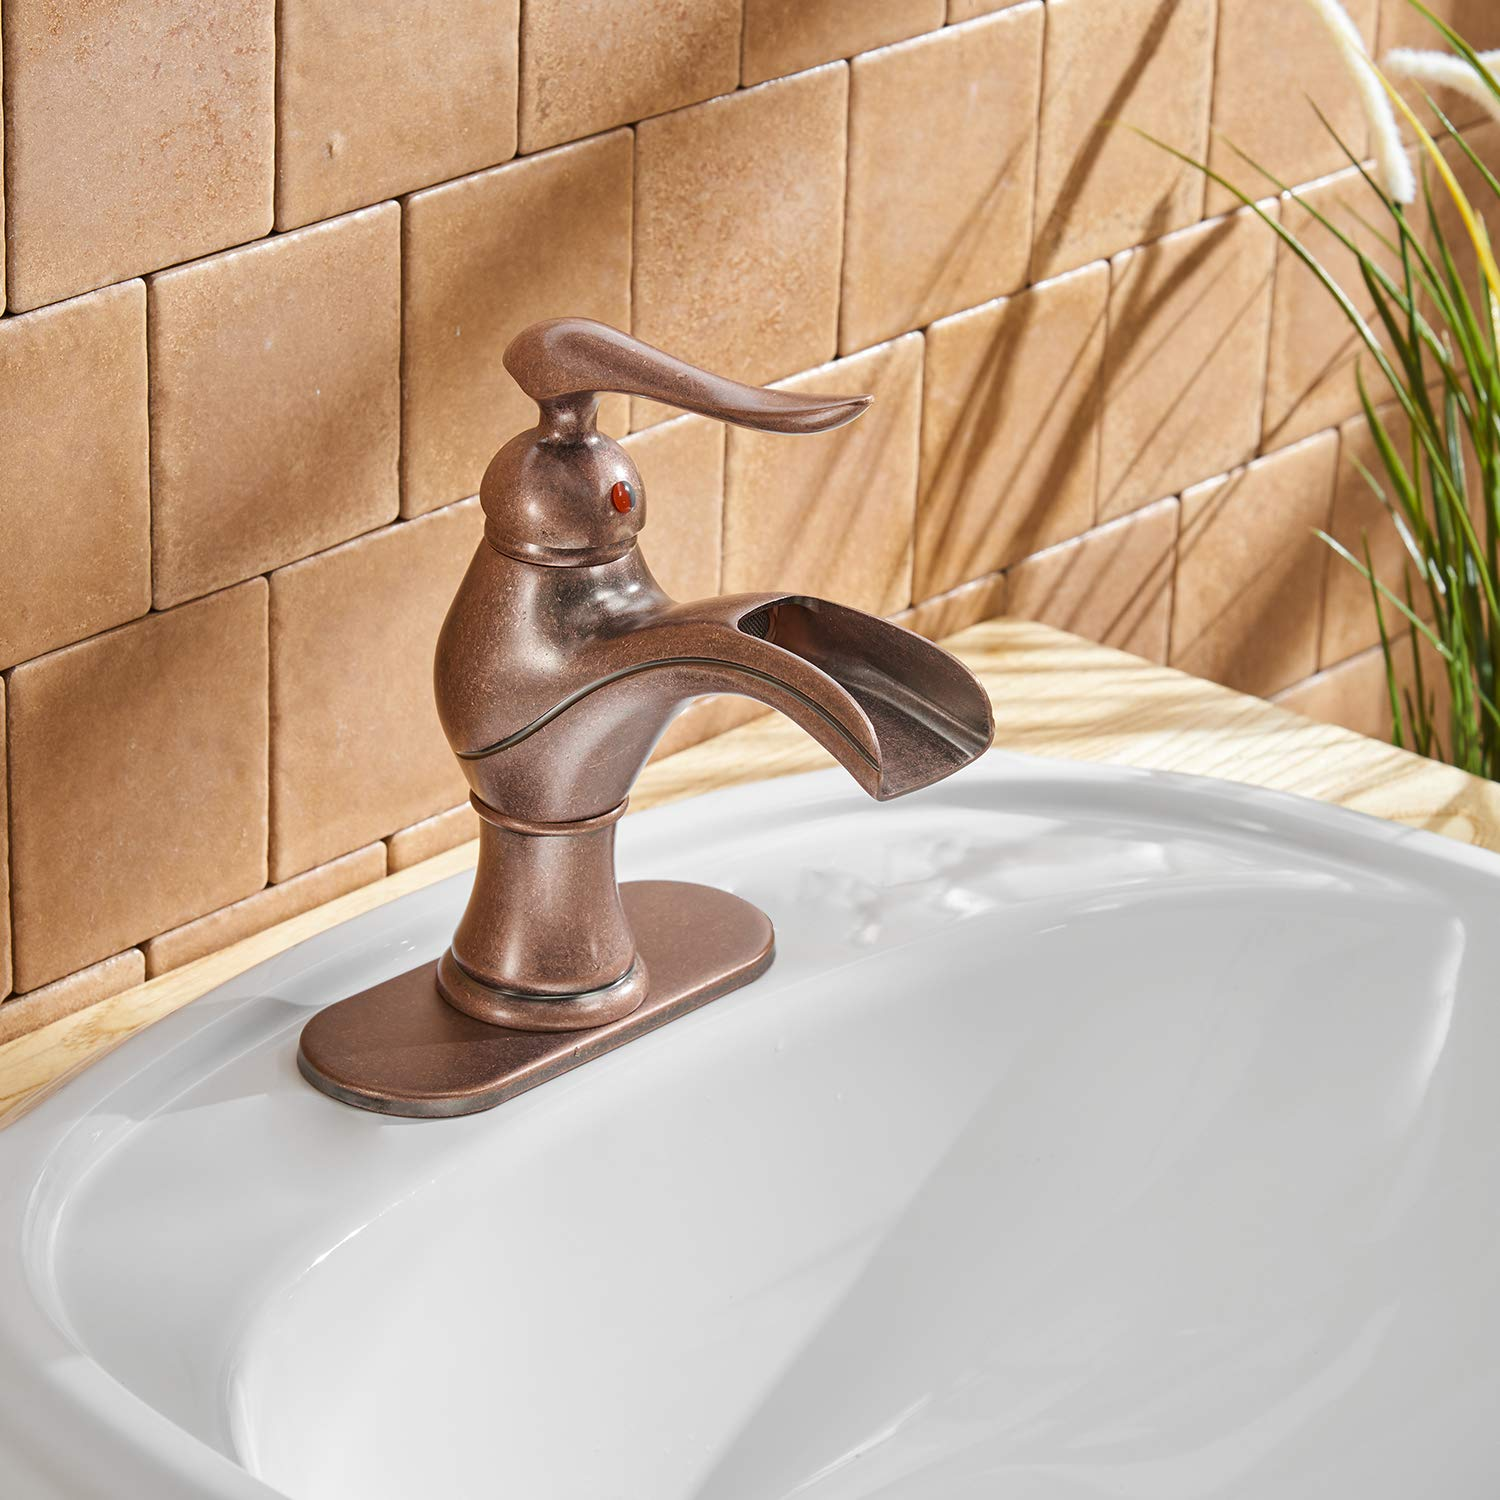 BWE Waterfall Single Handle Hole Lavatory Vanity Basin Bathroom Sink Faucet Antique Brass Copper Commercial